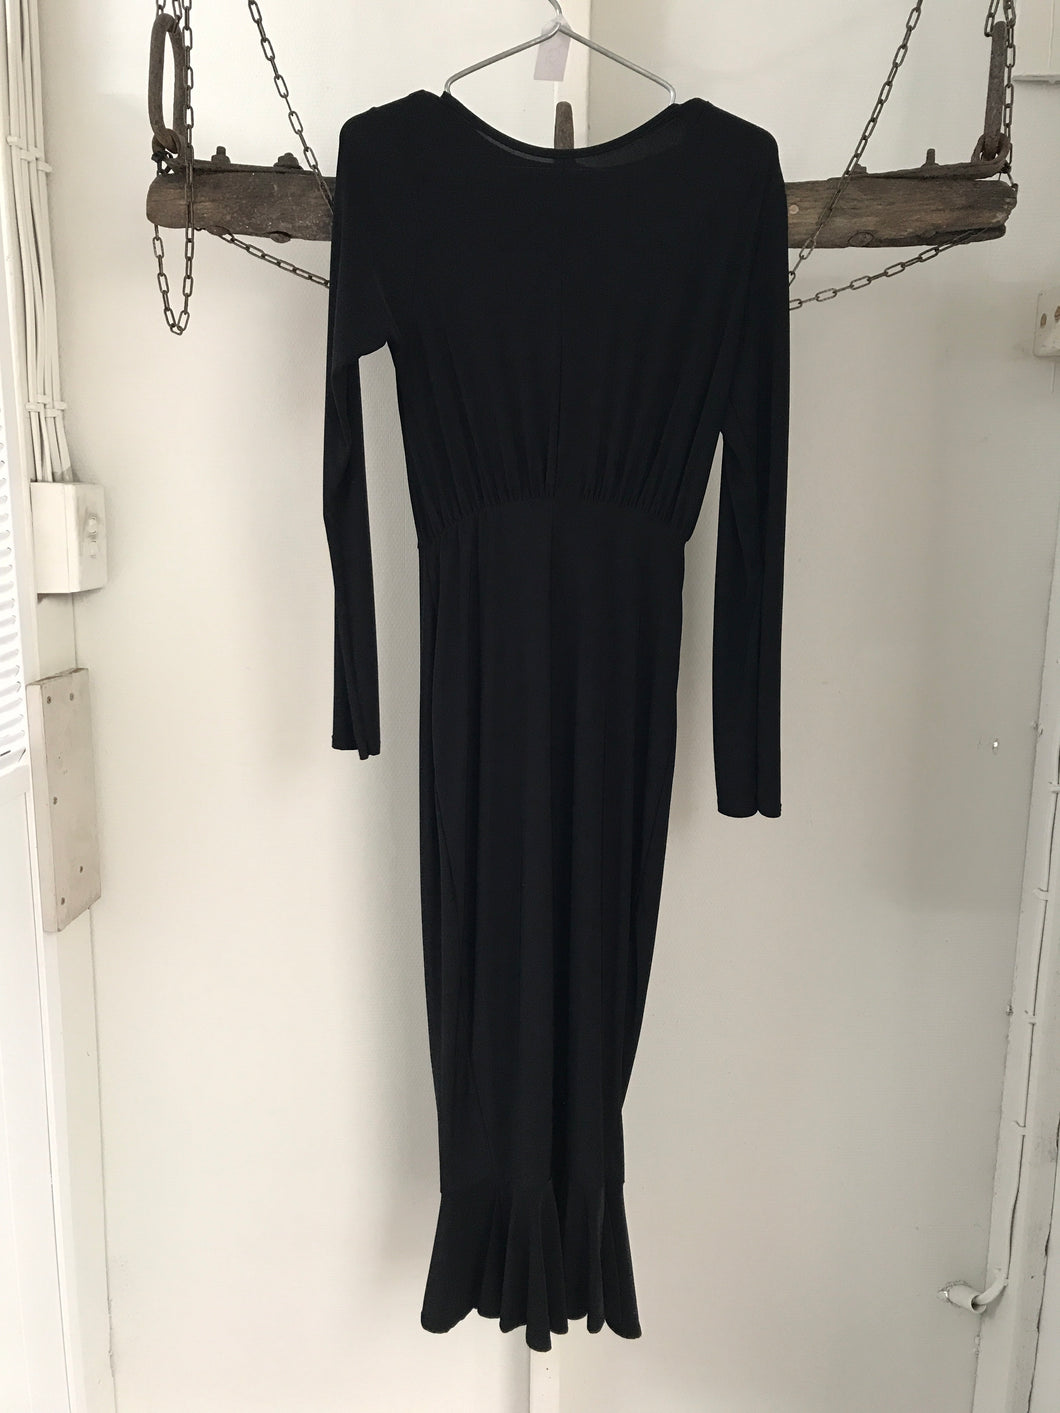 Boohoo Long Black Evening Dress Size 10